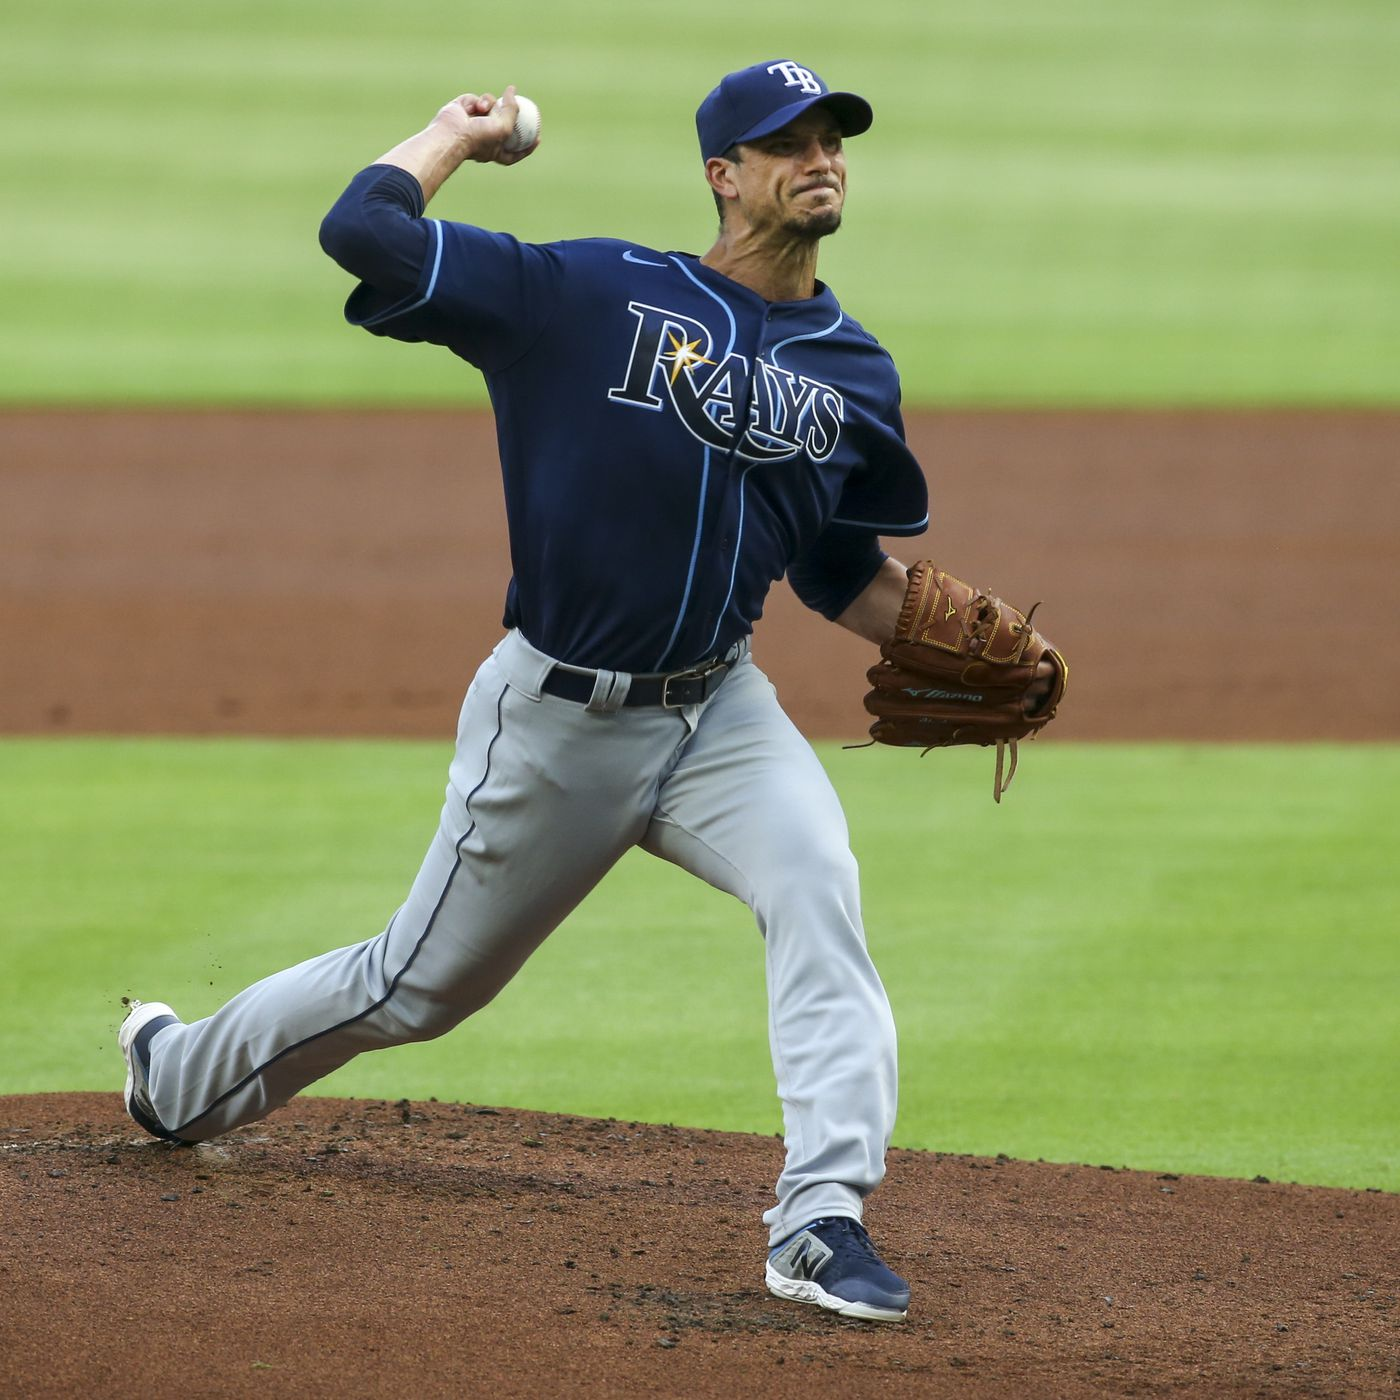 qopkgsuufalm https www talkingchop com 2020 11 24 21612627 braves agree to one year deal with charlie morton